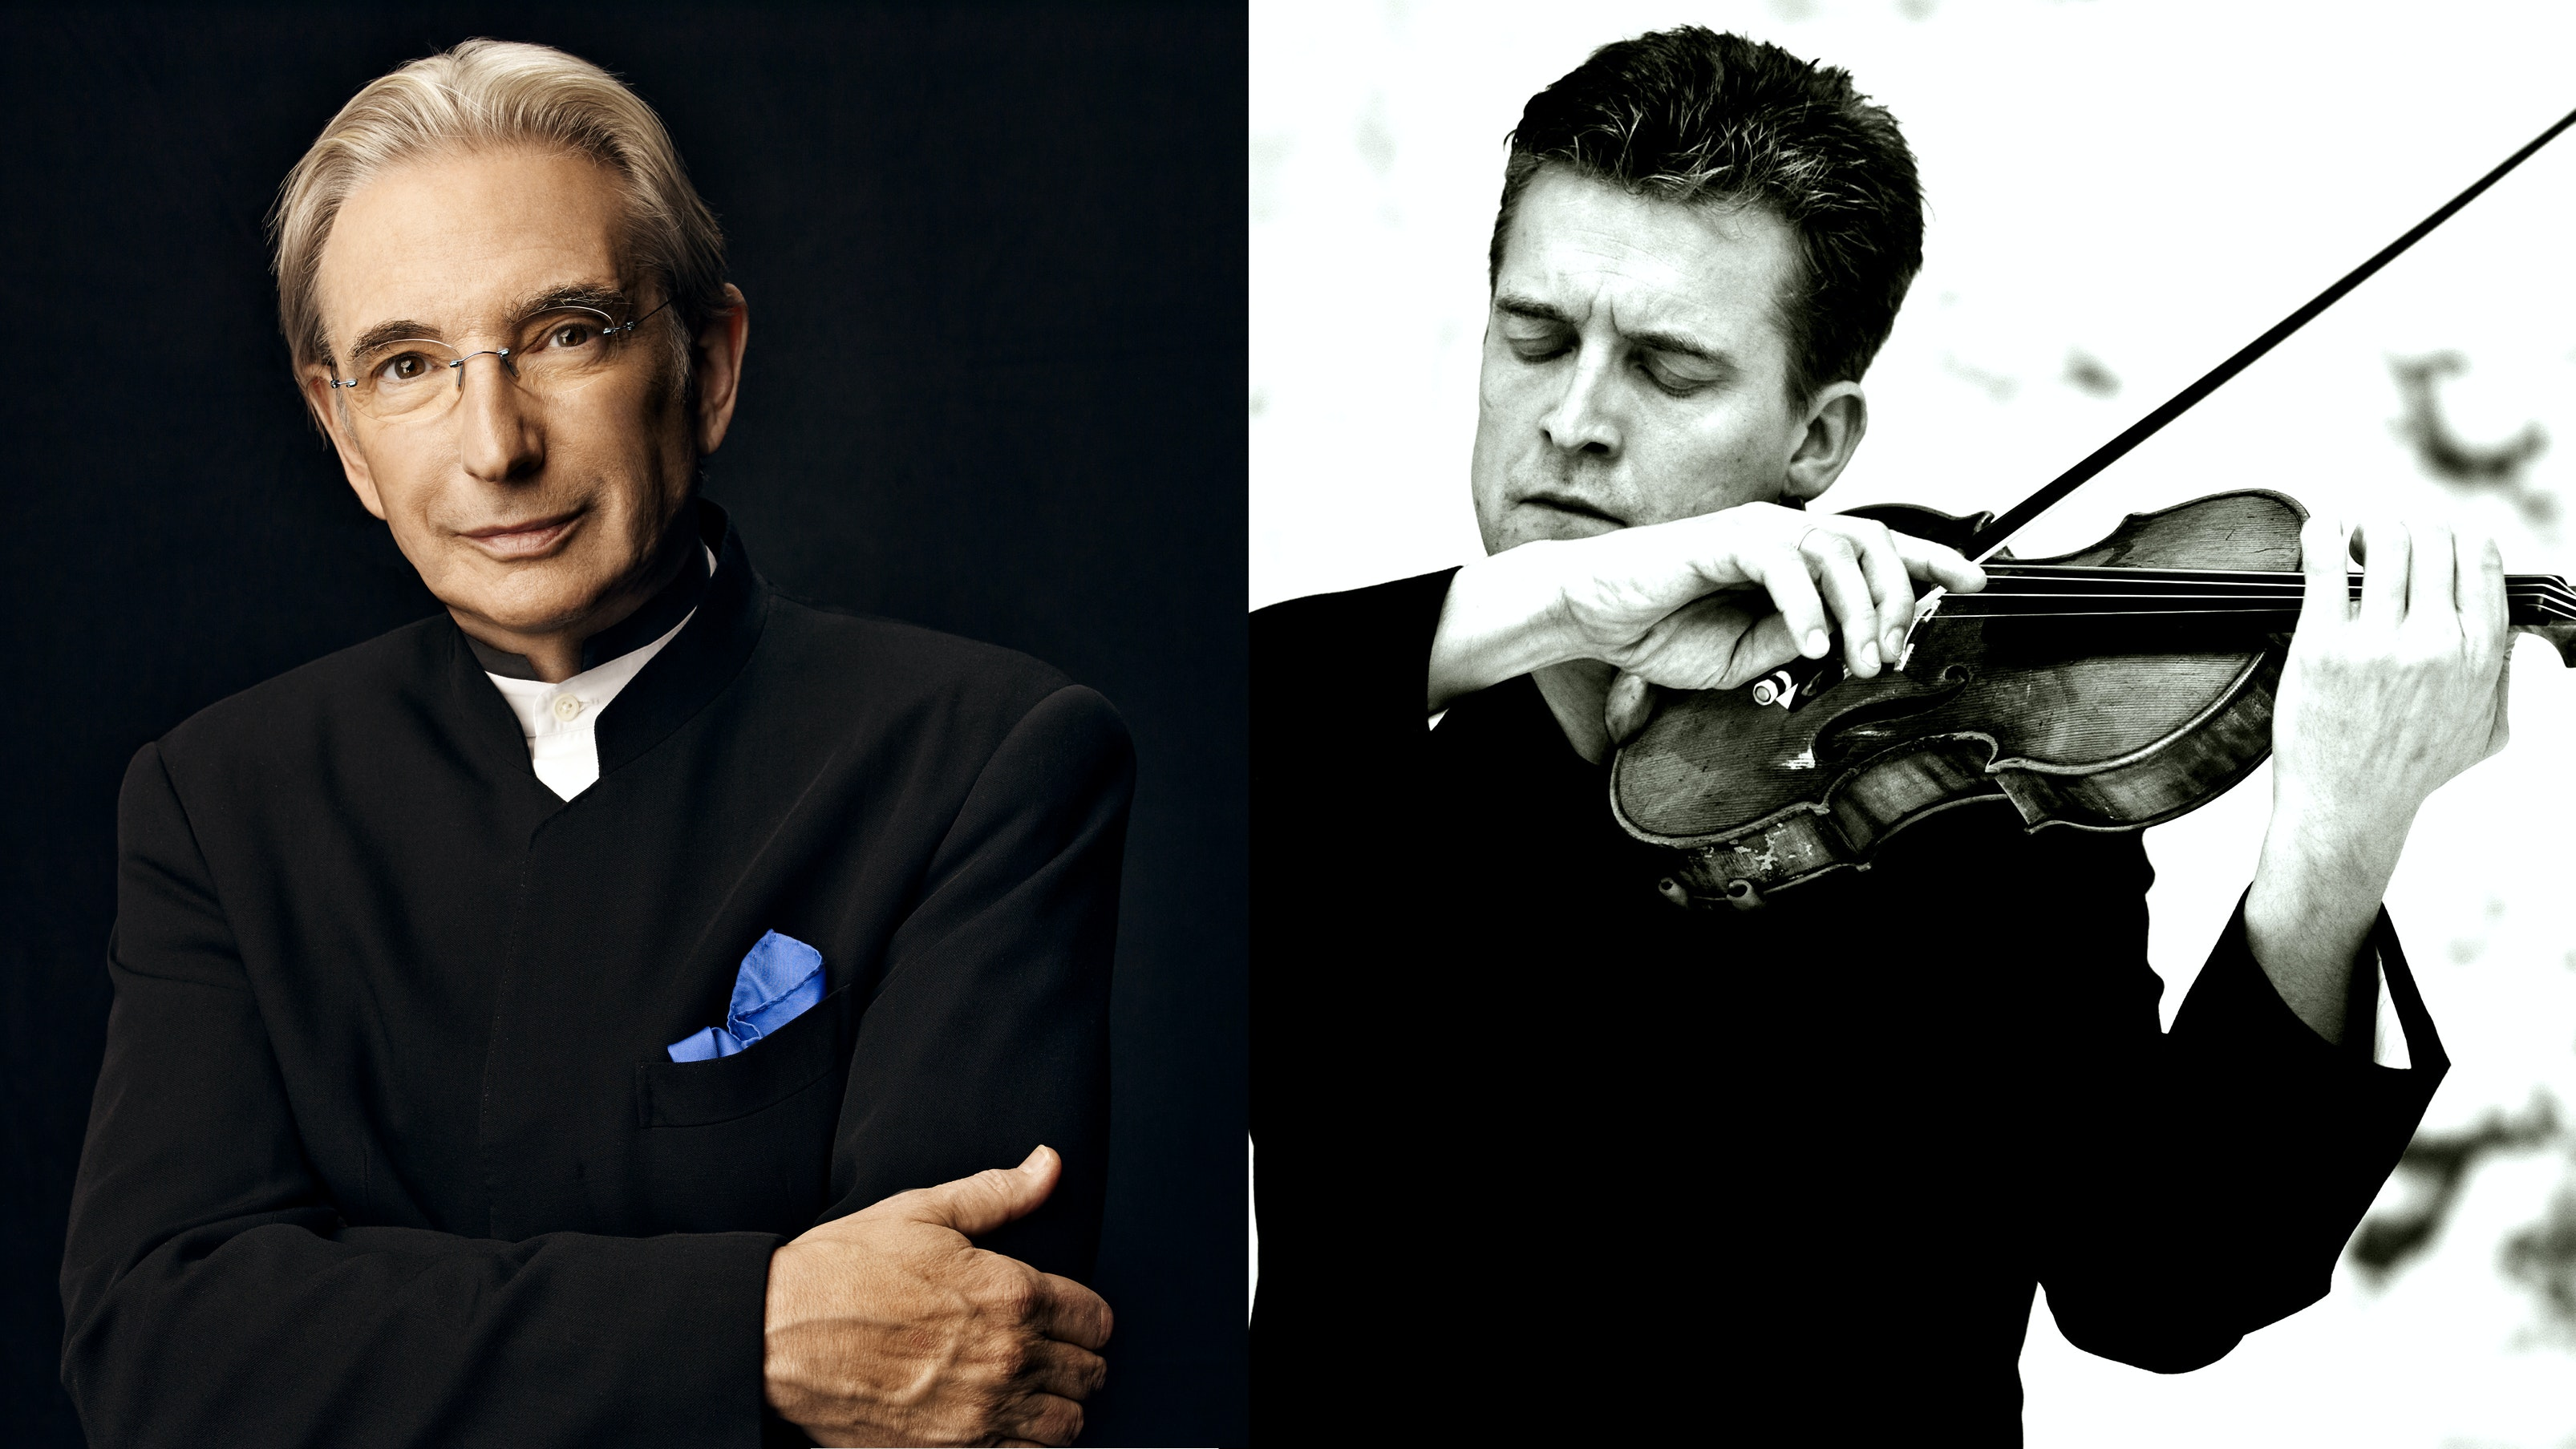 Michael Tilson Thomas conducts Cage, Ligeti and Beethoven – With Christian Tetzlaff